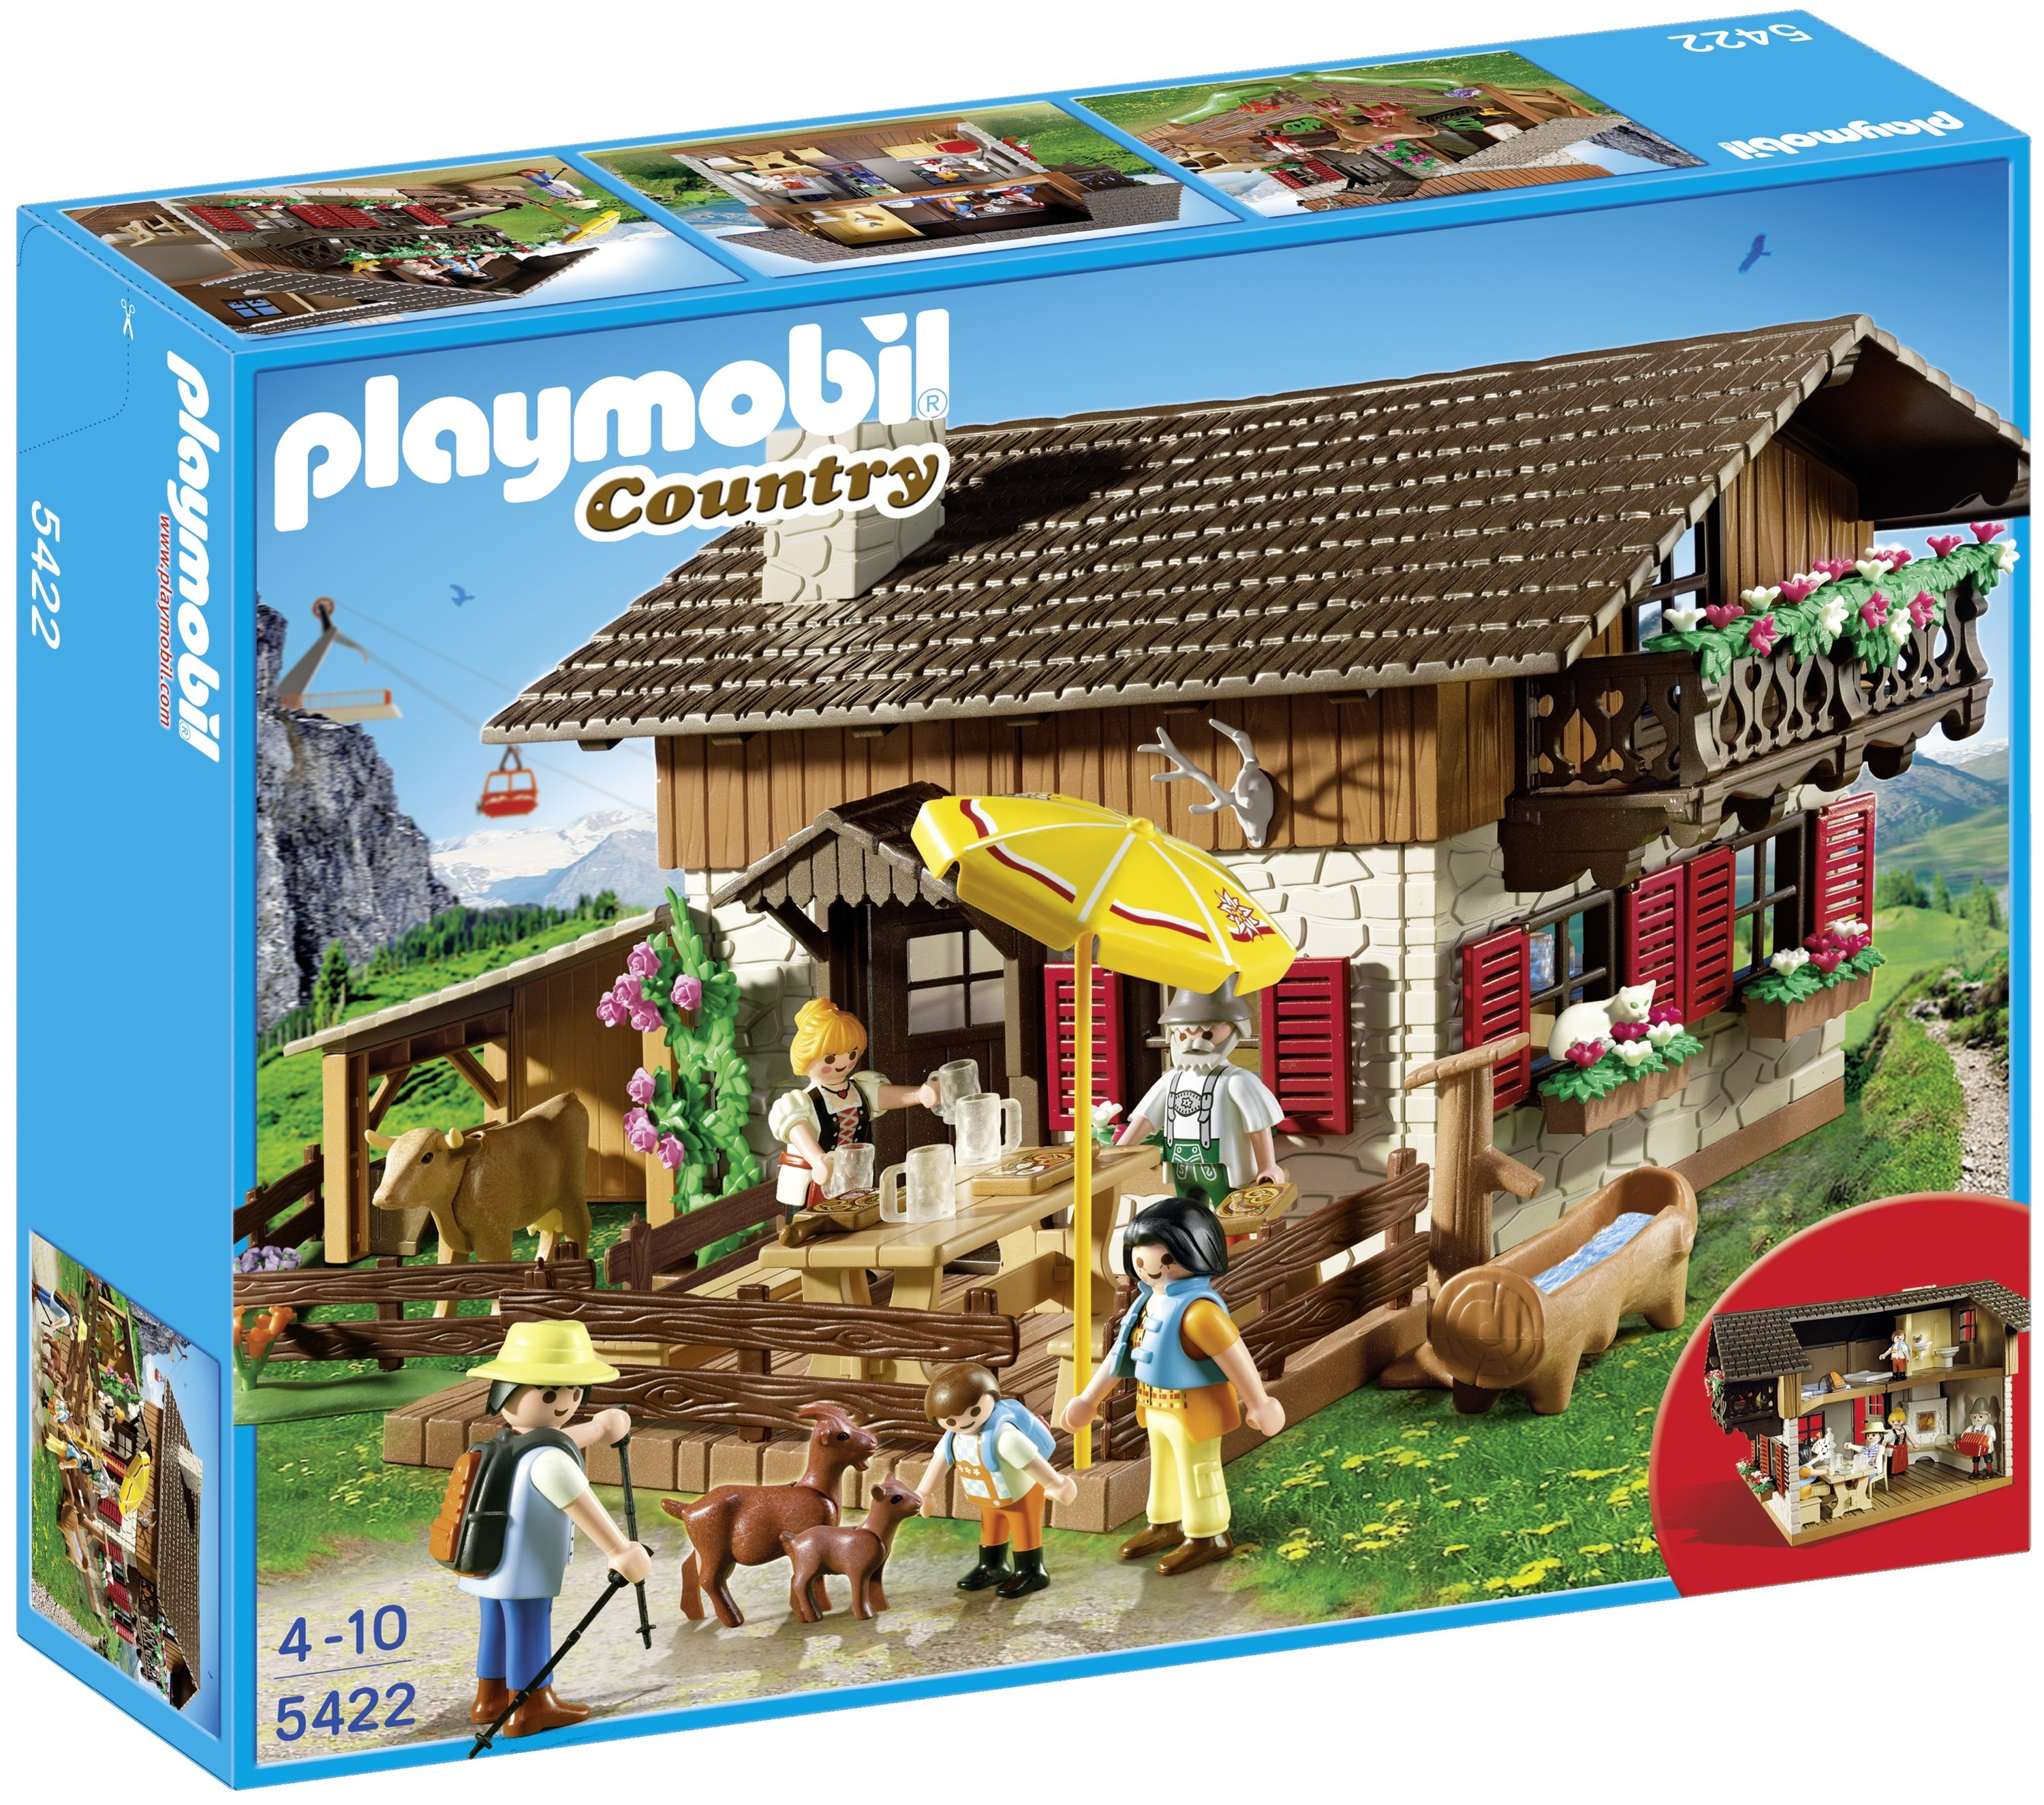 Chalet - Playmobil Country 5422